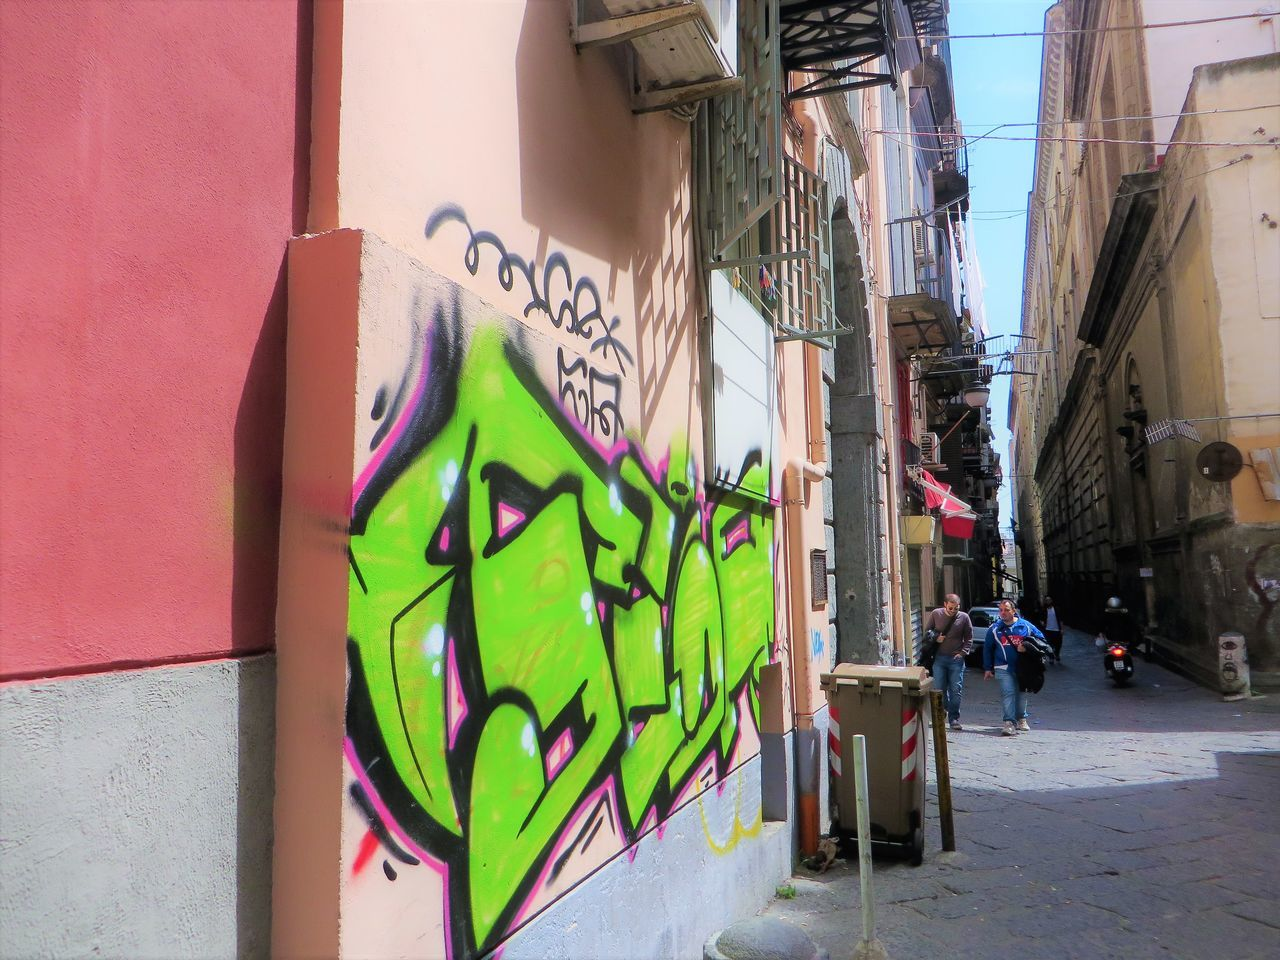 architecture, built structure, building exterior, graffiti, city, outdoors, day, no people